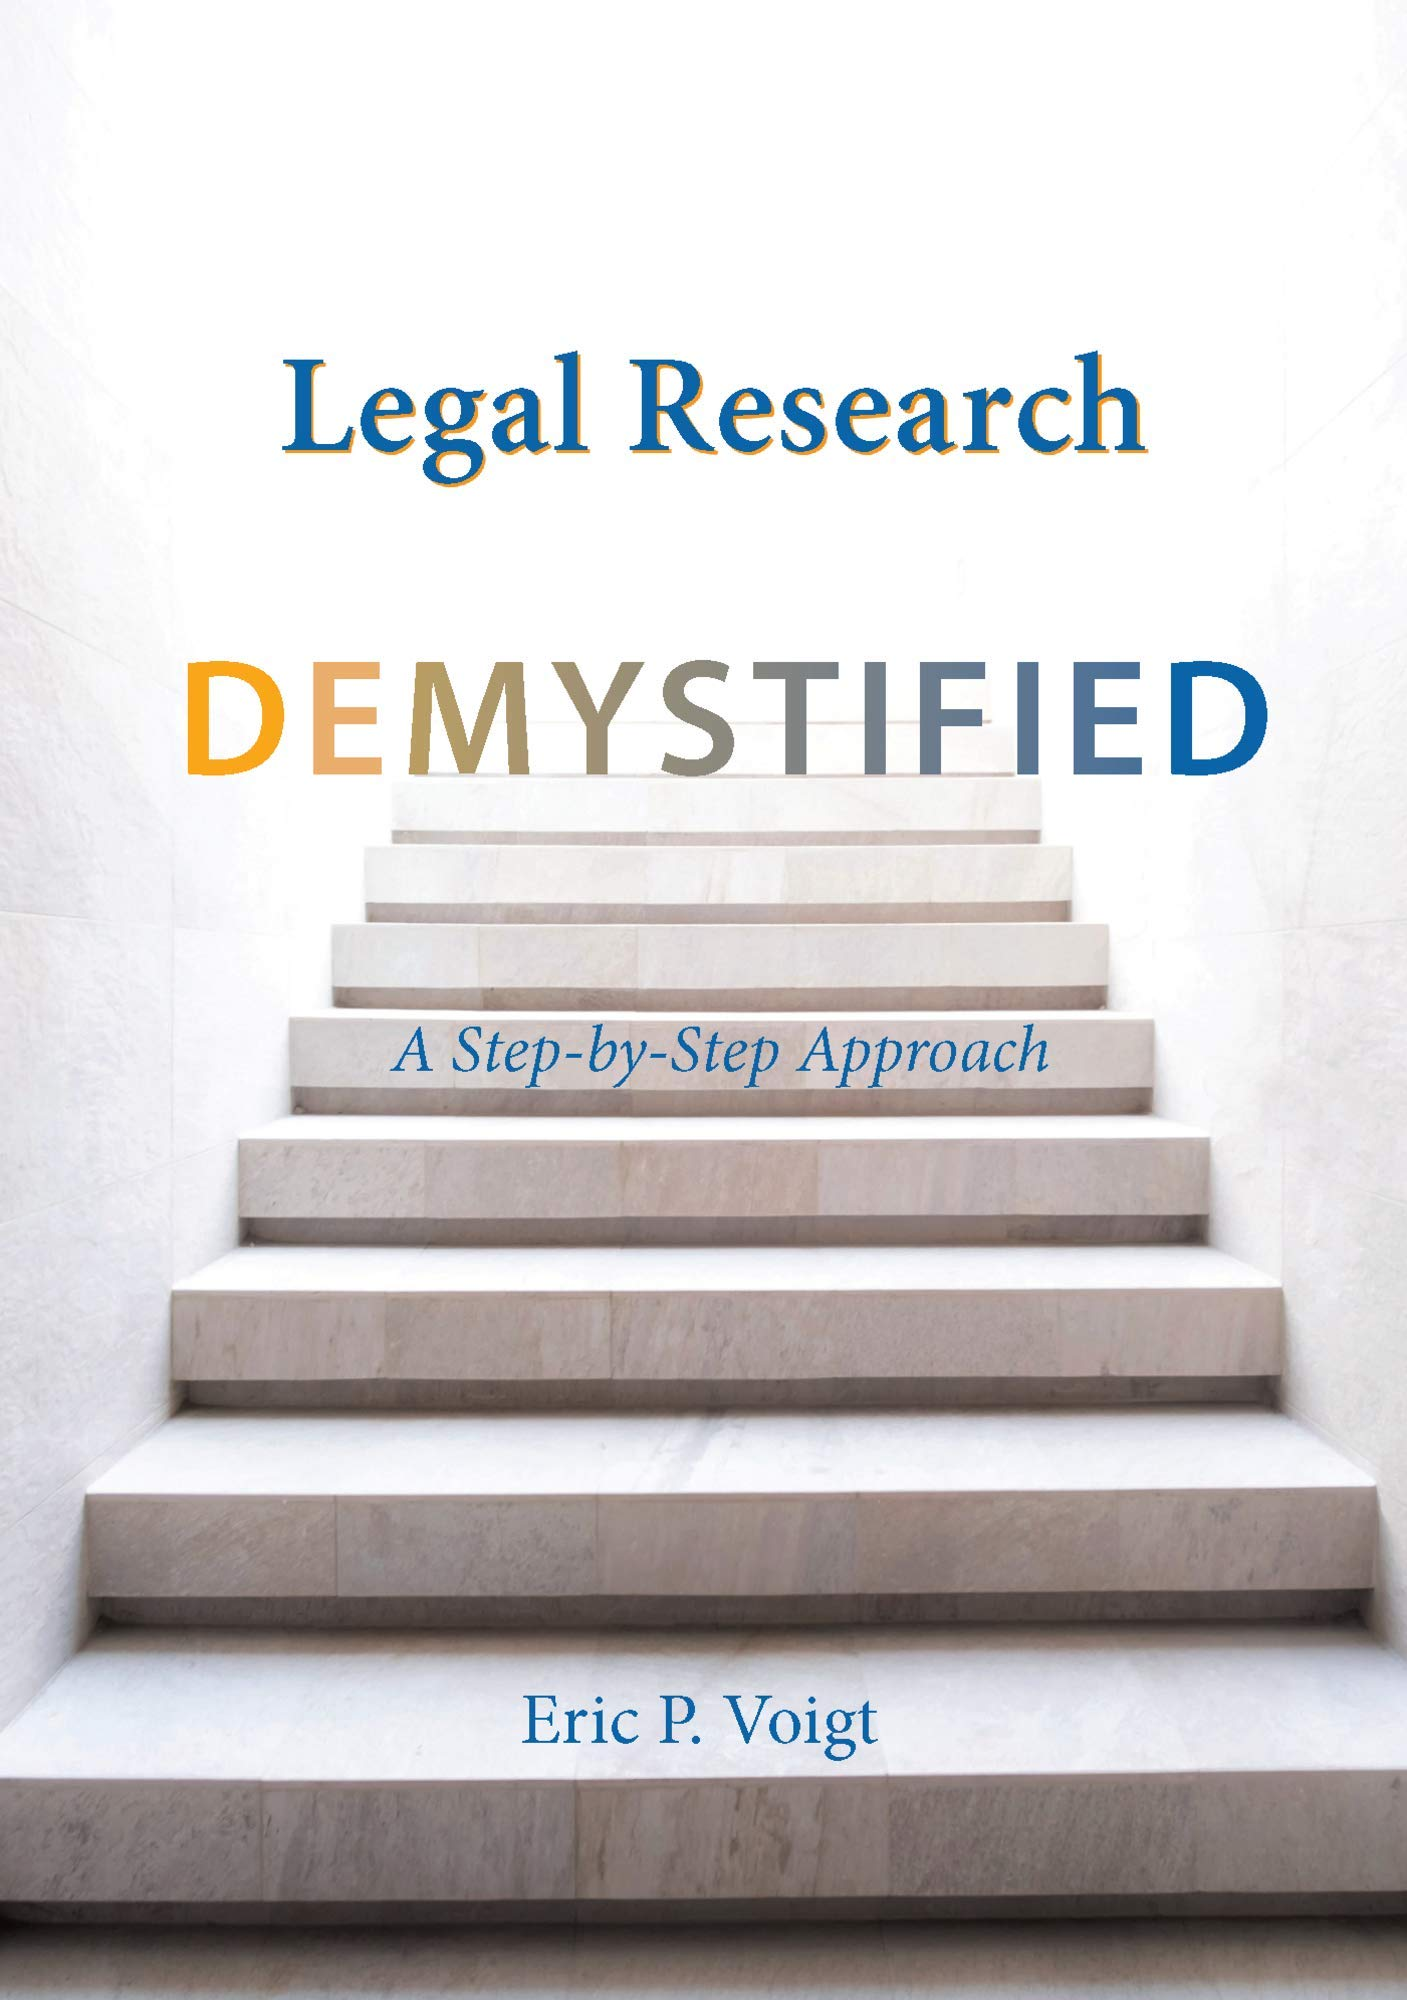 Legal Research Demystified: A Step-by-Step Approach by Carolina Academic Press